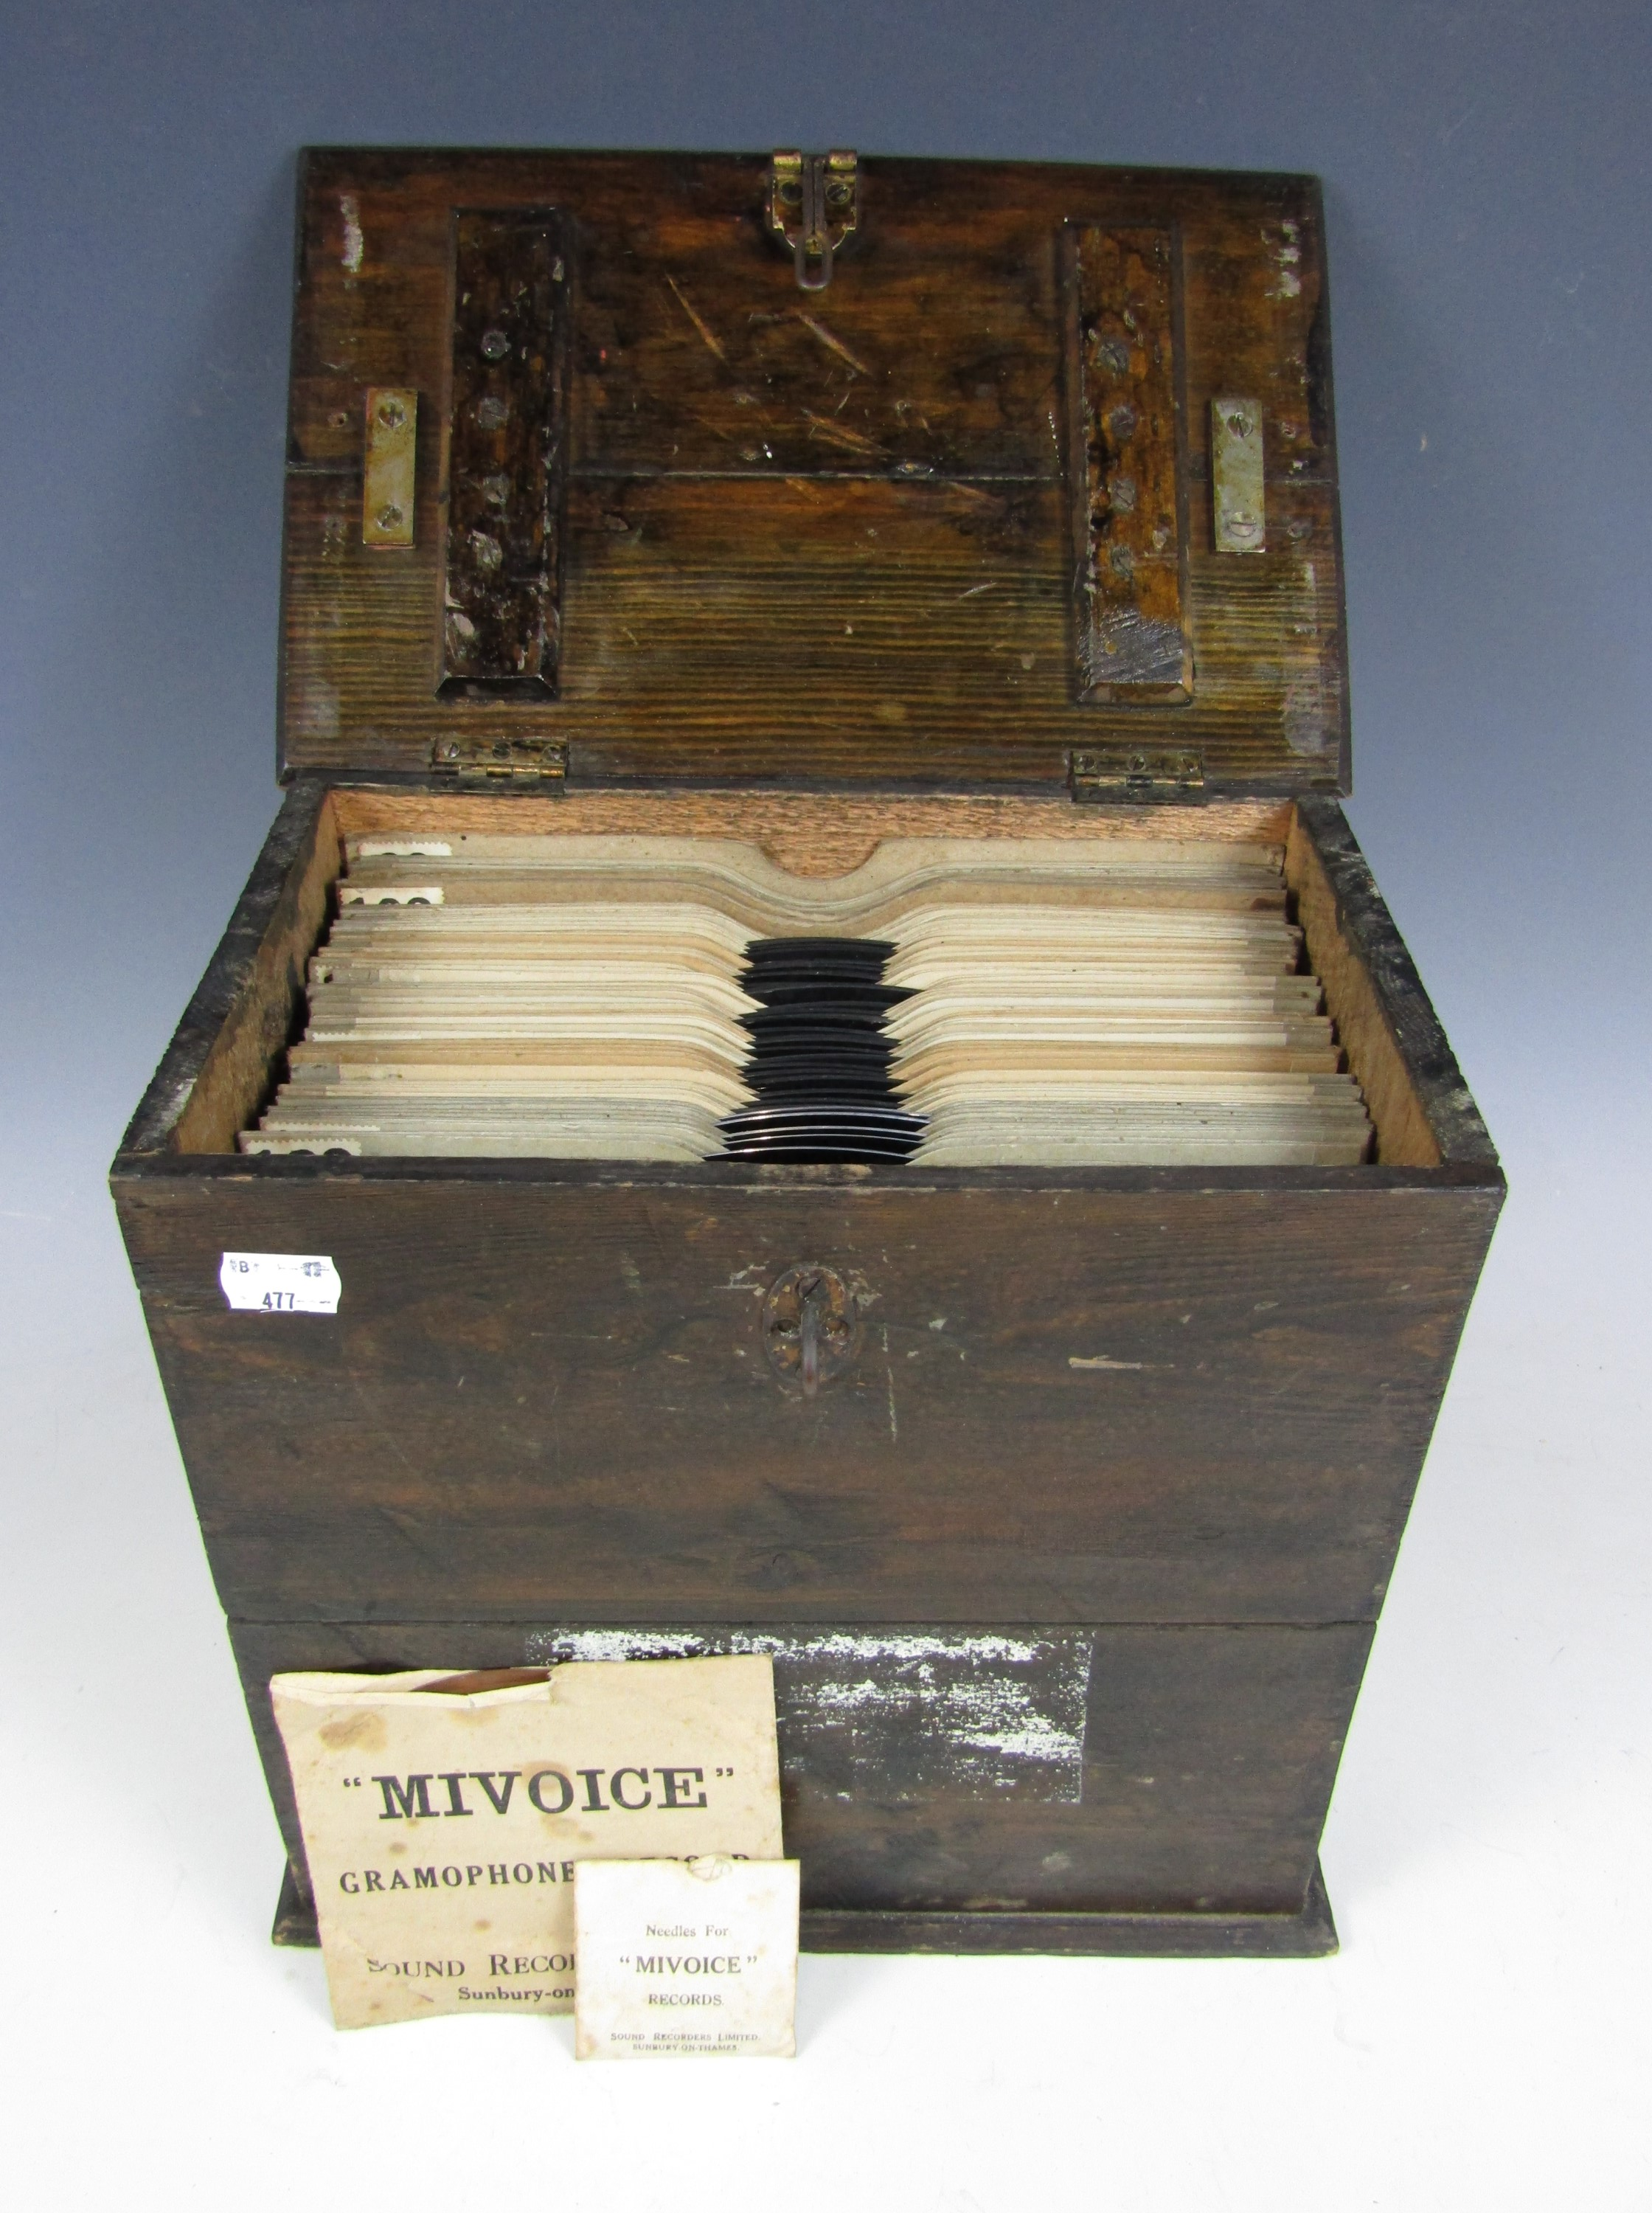 Lot 35 - A wooden case of 78 rpm records together with Miudice record needles and a record